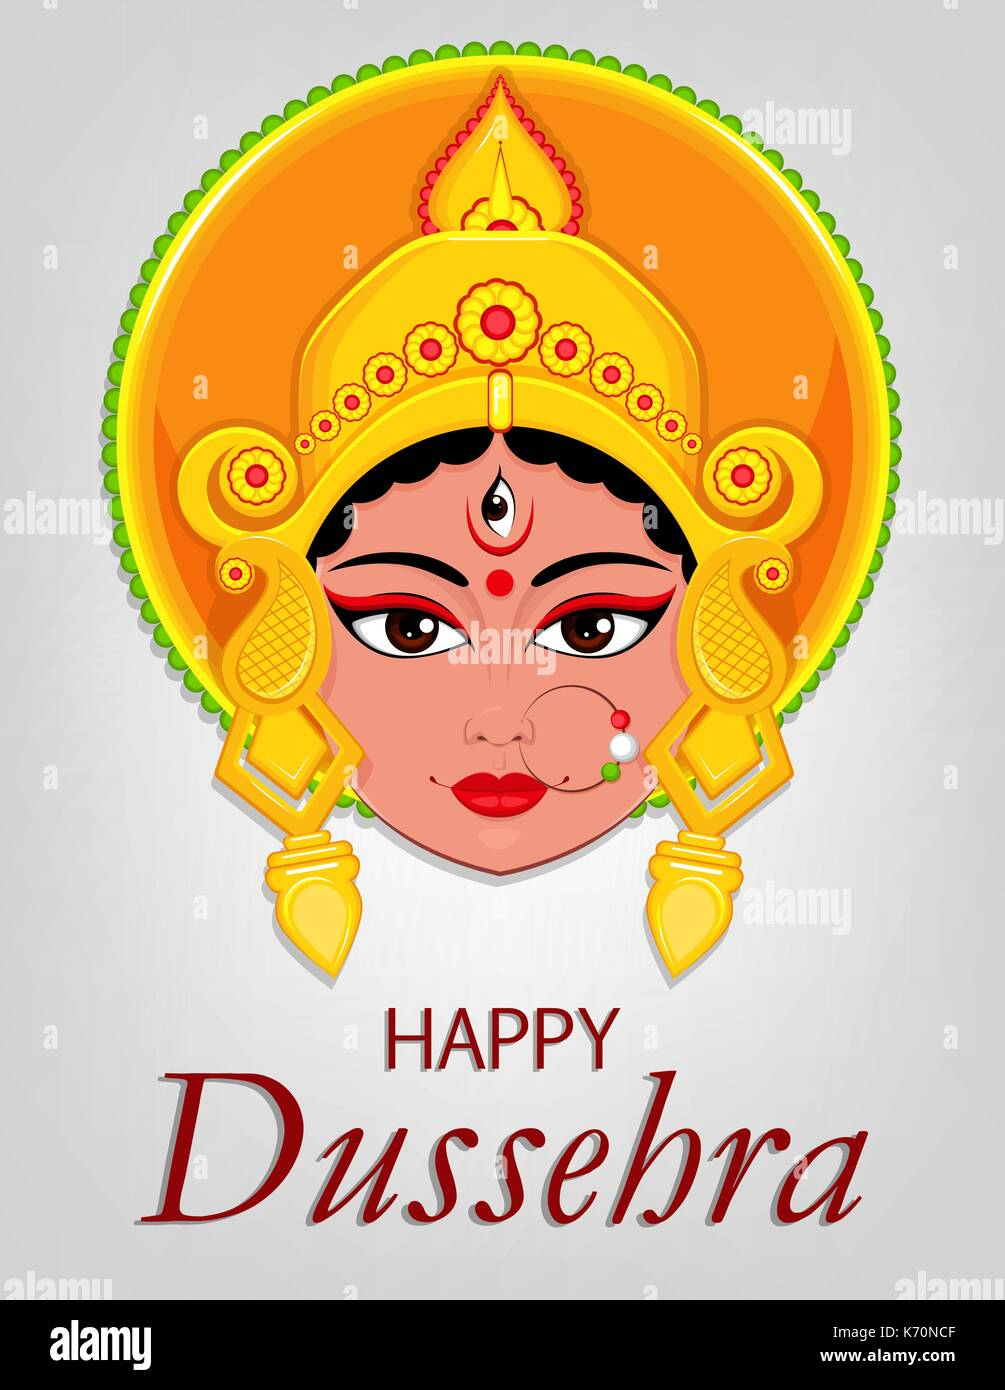 Happy dussehra greeting card maa durga face for hindu festival happy dussehra greeting card maa durga face for hindu festival vector illustration on light grey background kristyandbryce Choice Image